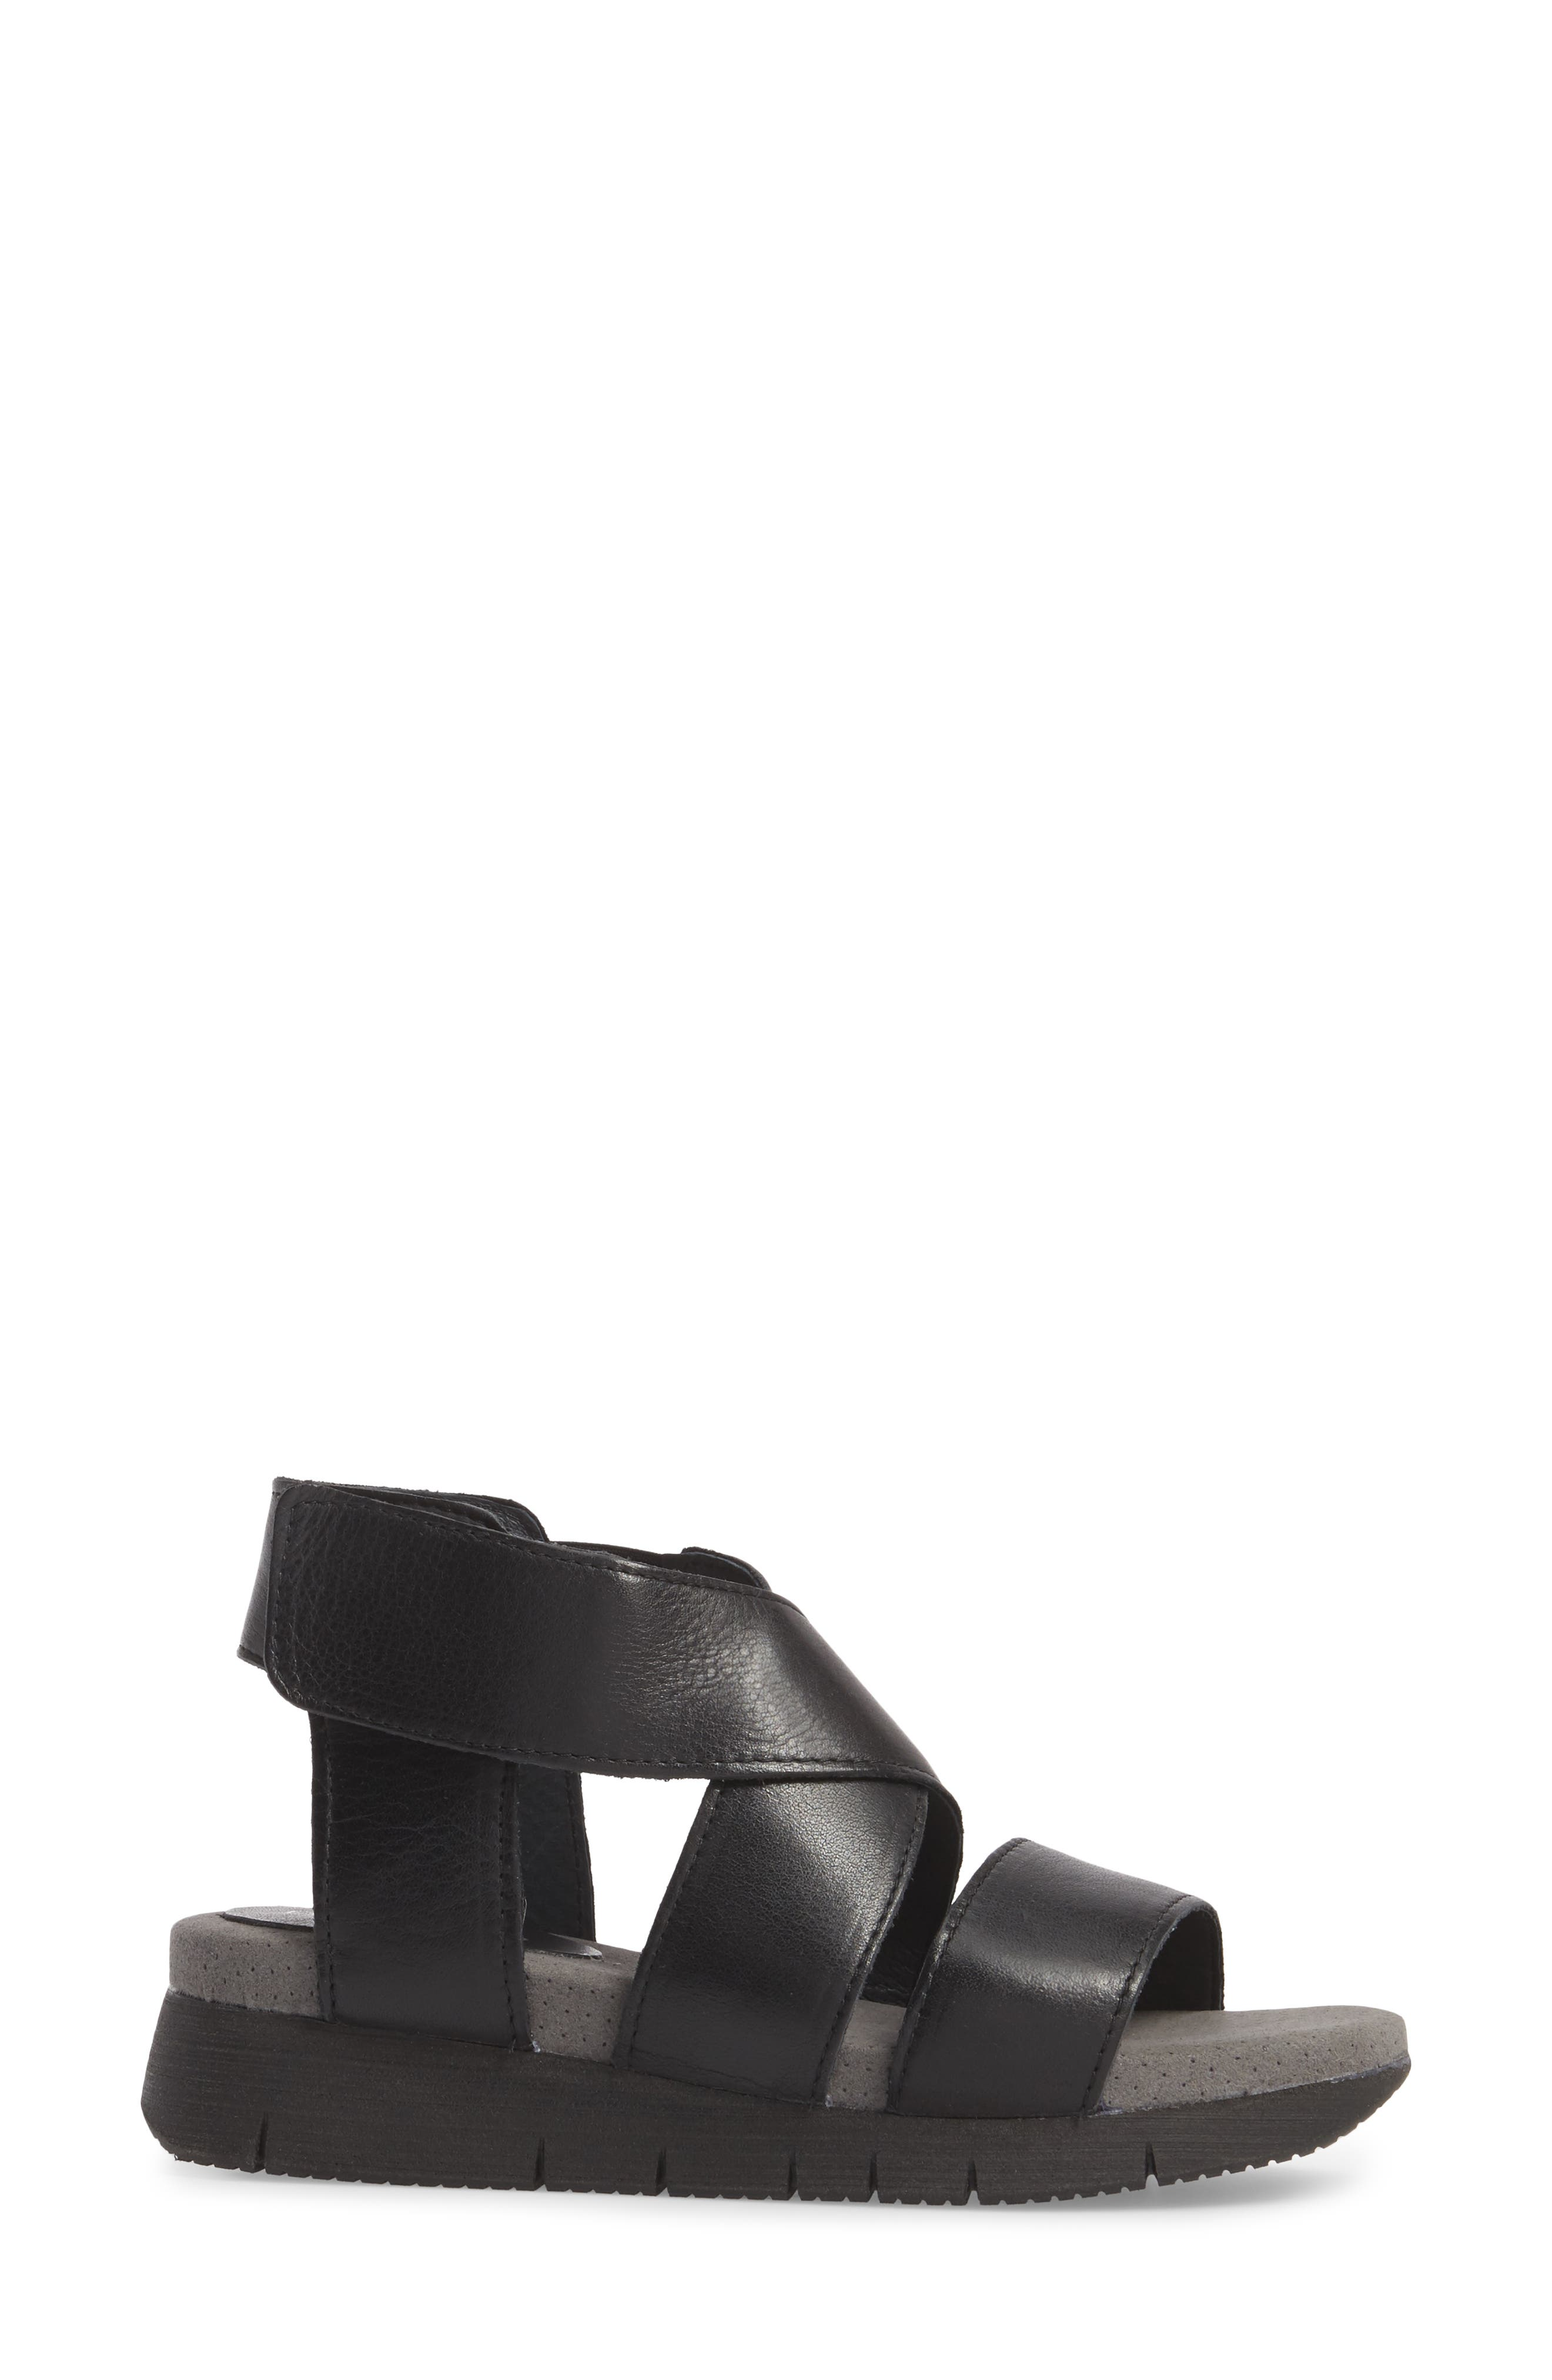 BOS. & CO., Piper Wedge Sandal, Alternate thumbnail 3, color, BLACK SAUVAGE LEATHER